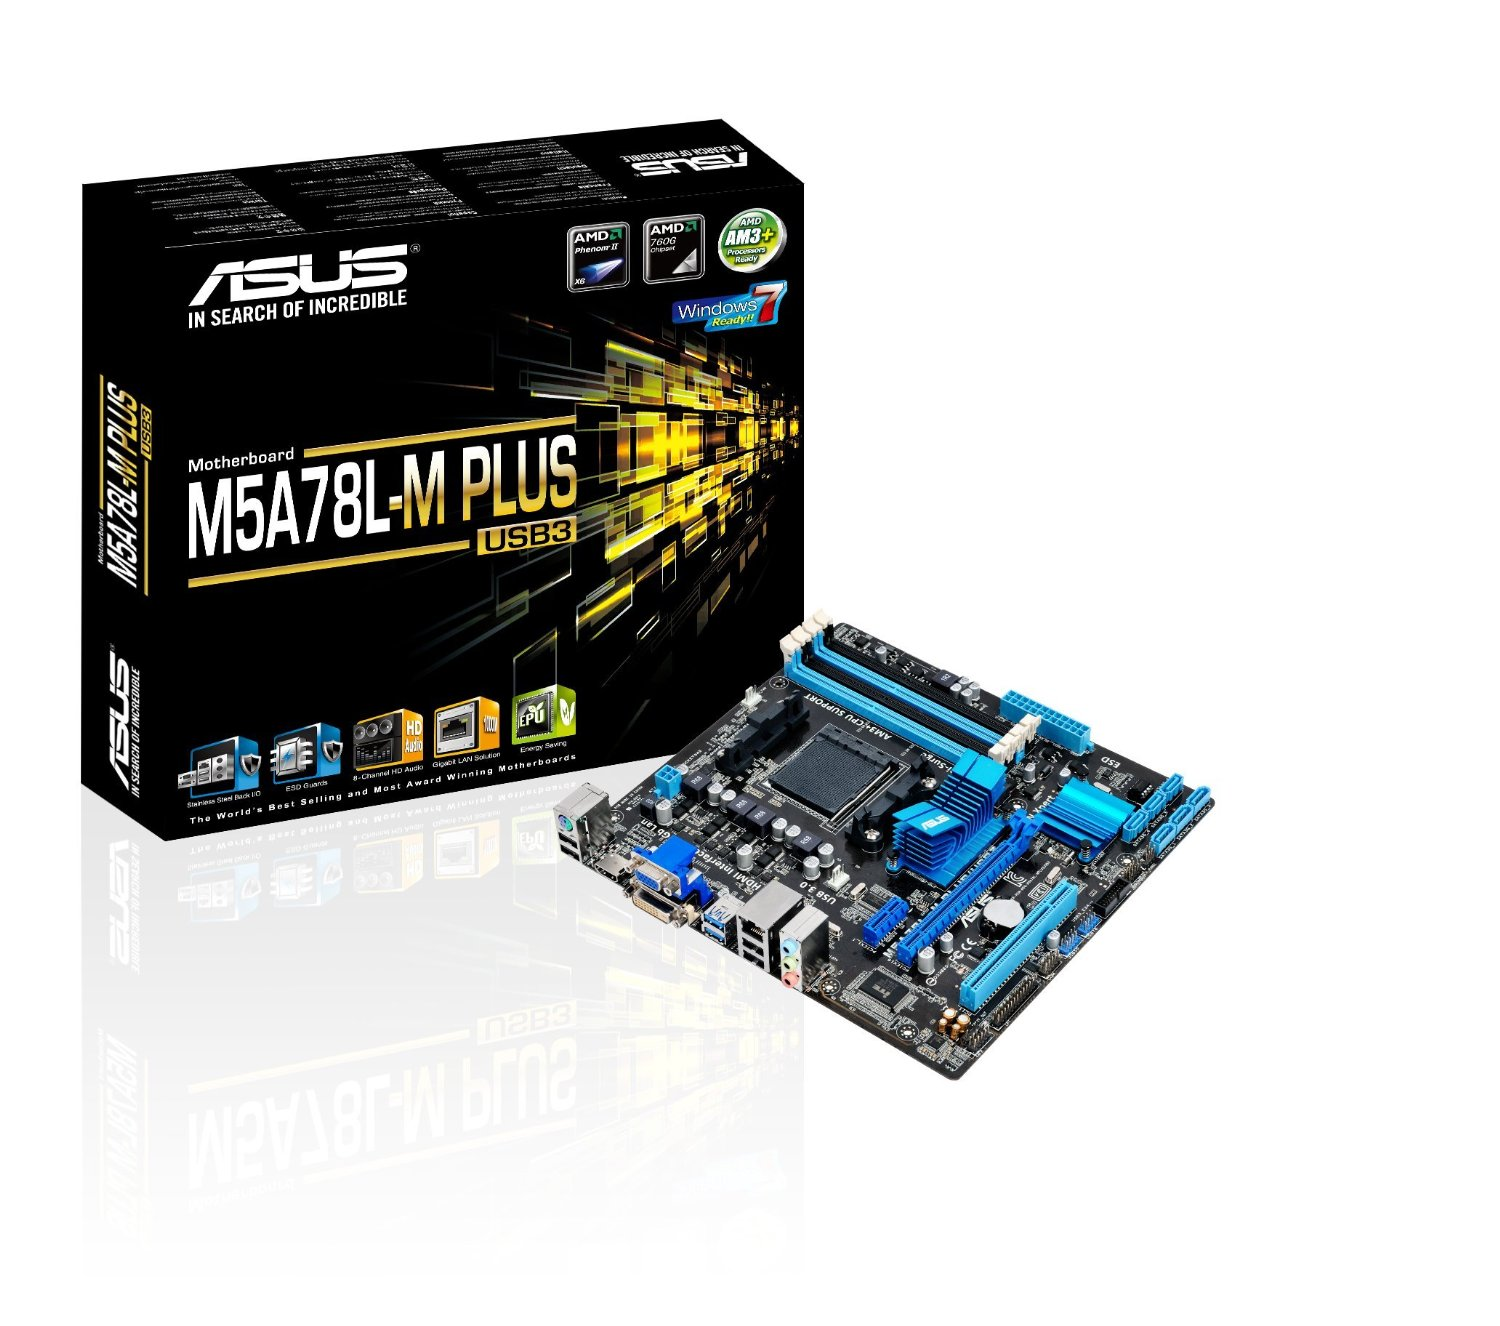 asus m5a78l m plus usb3 am3 ddr3 hdmi 760g microatx motherboard 97 asus m5a78l m plus usb3 am3 ddr3 hdmi 760g microatx motherboard  at gsmportal.co